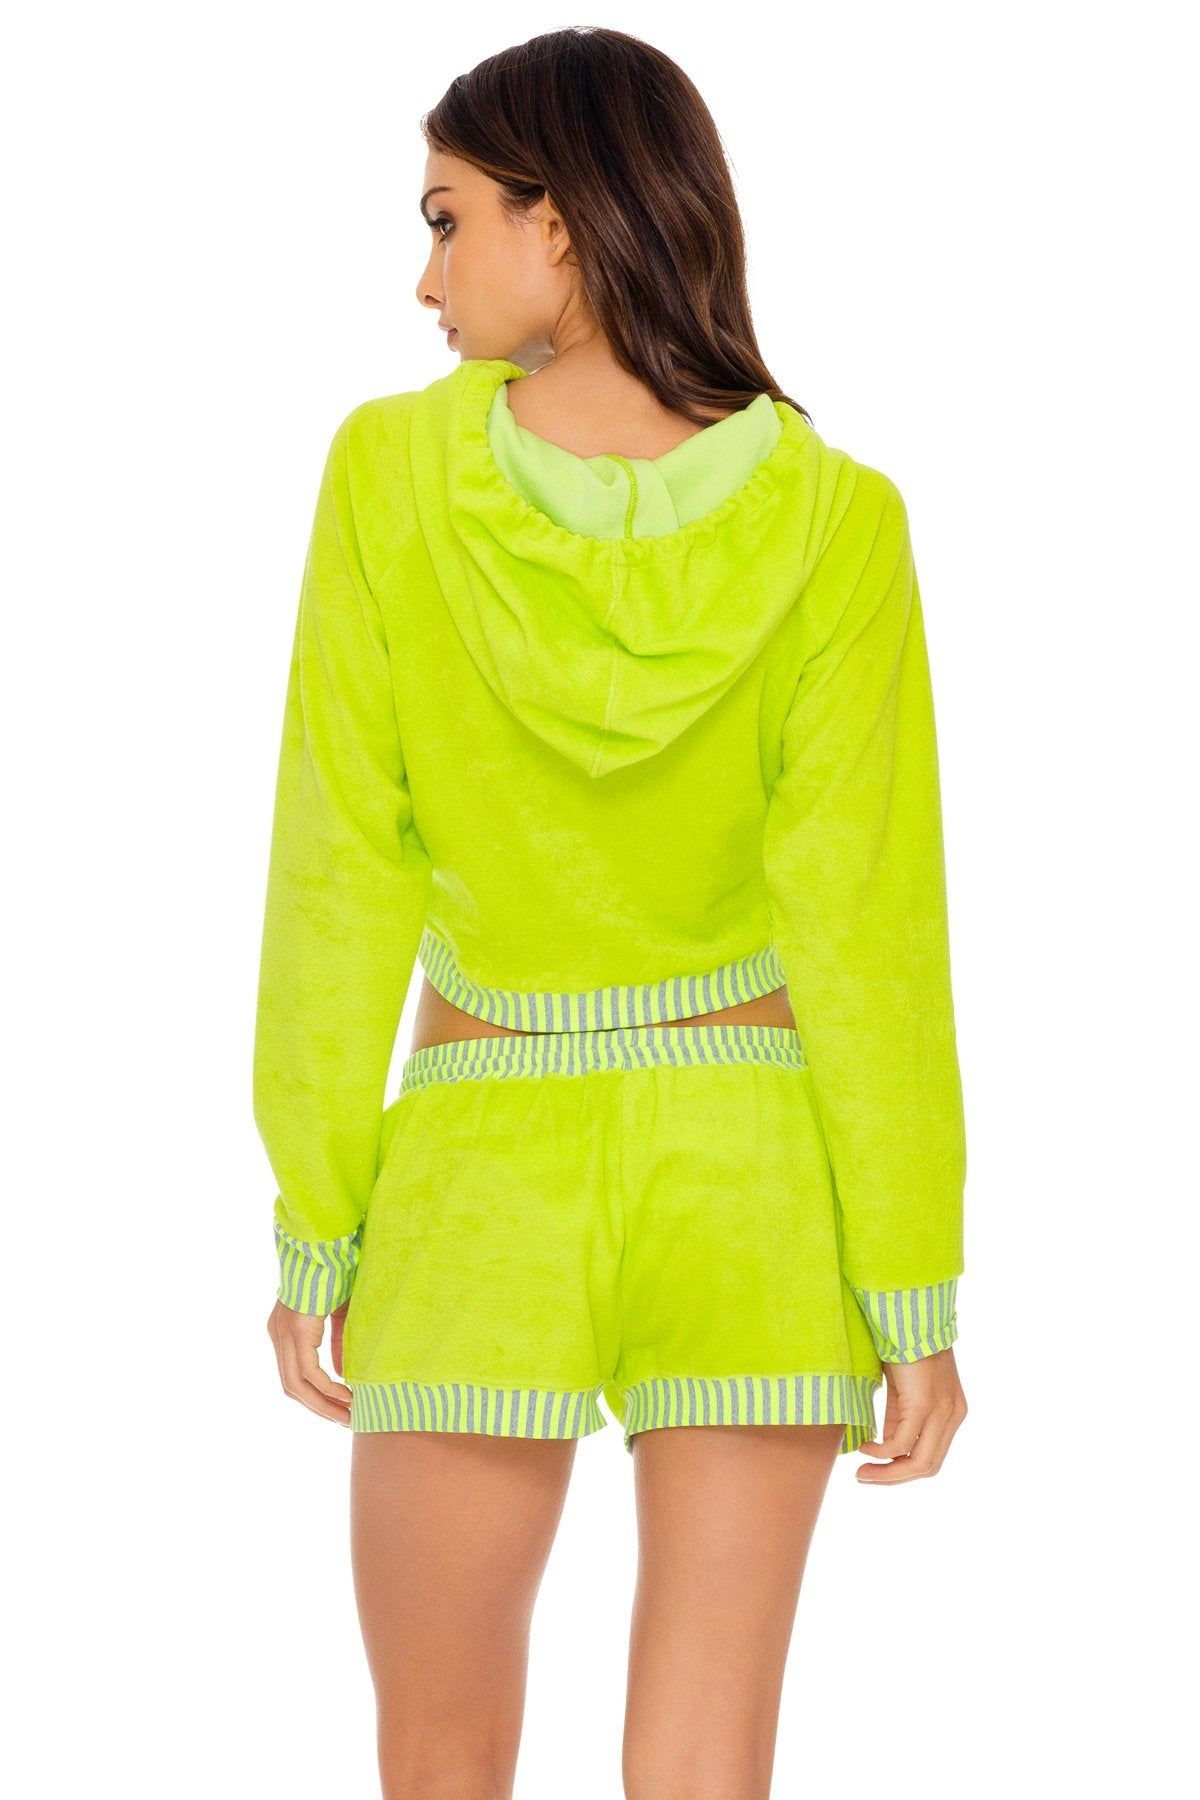 GLOW BABY GLOW - Hoodie Cut Out Cropped Jacket & Relaxed Shorts • Lime